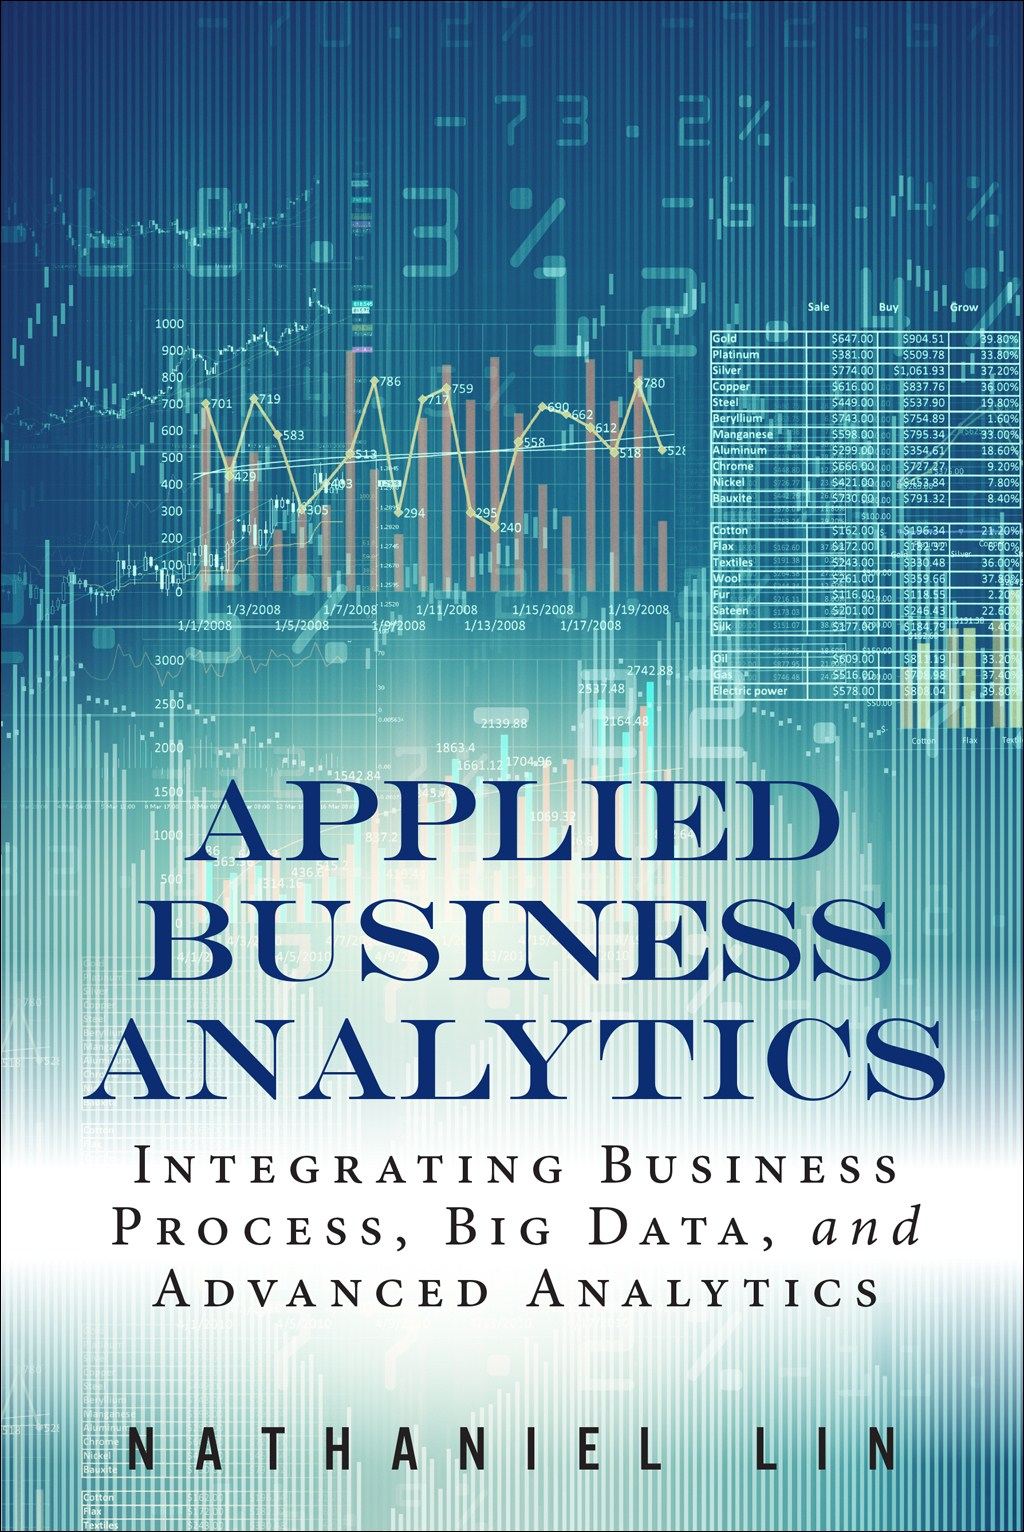 Applied Business Analytics: Integrating Business Process, Big Data, and Advanced Analytics